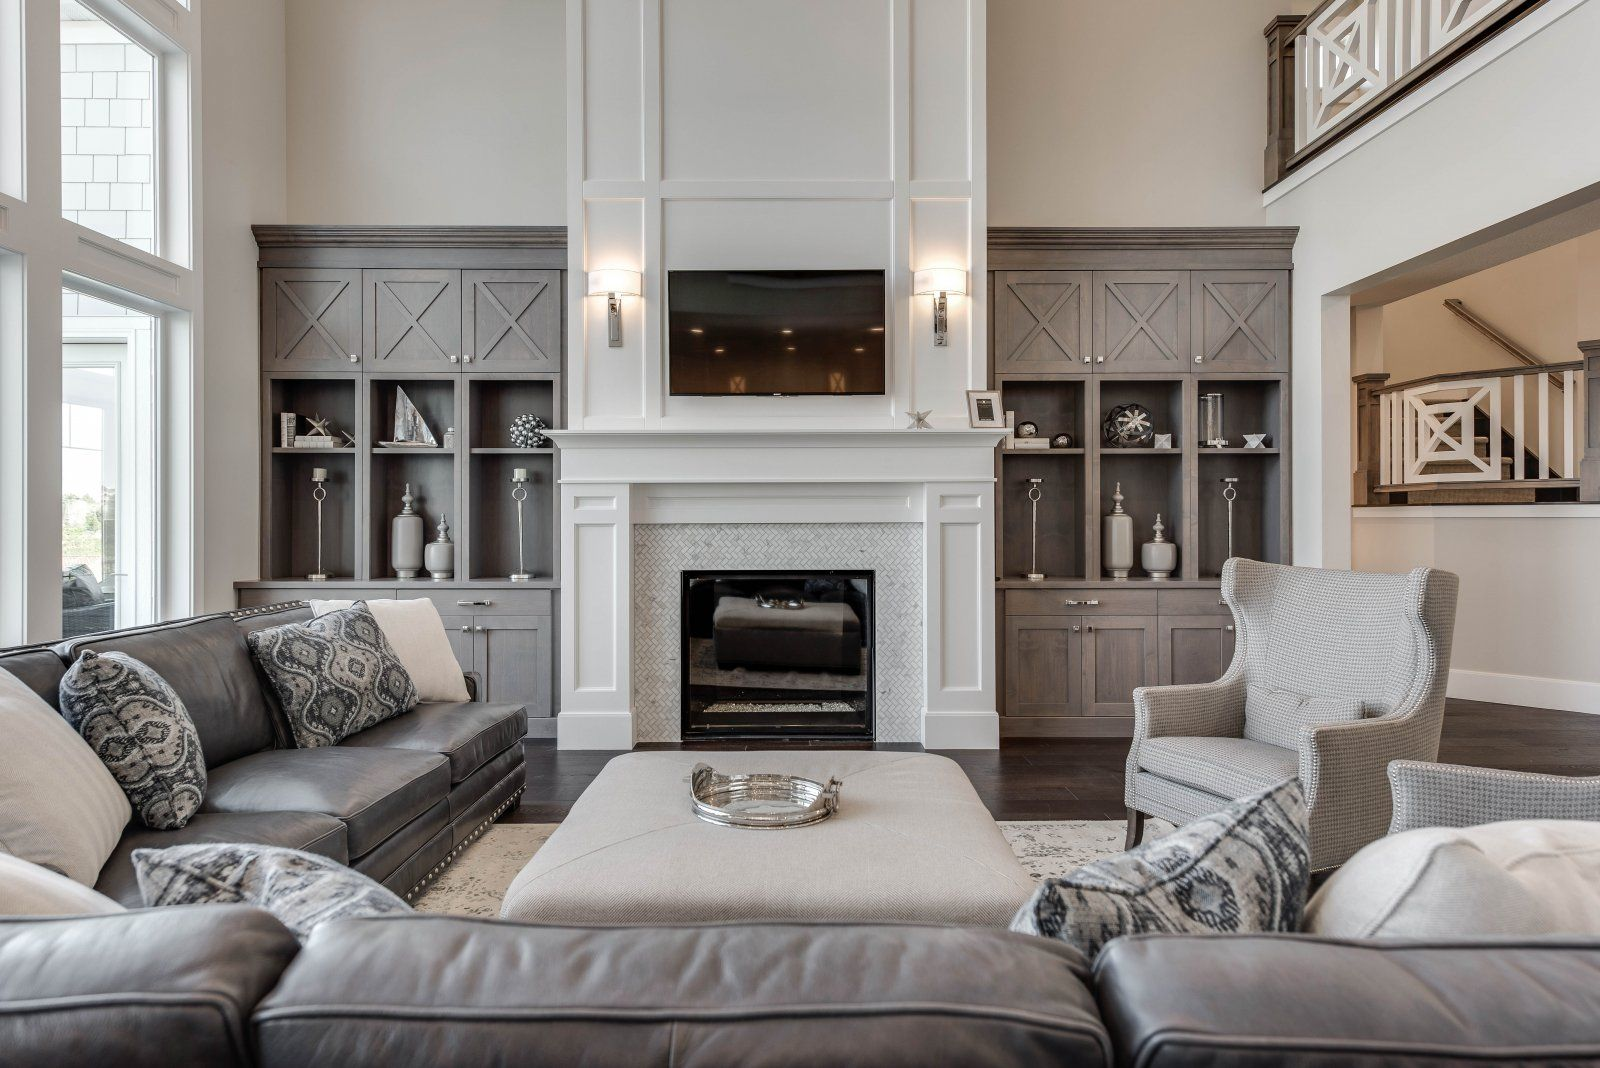 salt lake parade of homes rooms home  house  living room Living Room with Fireplace Design Ideas grey living room with white fireplace